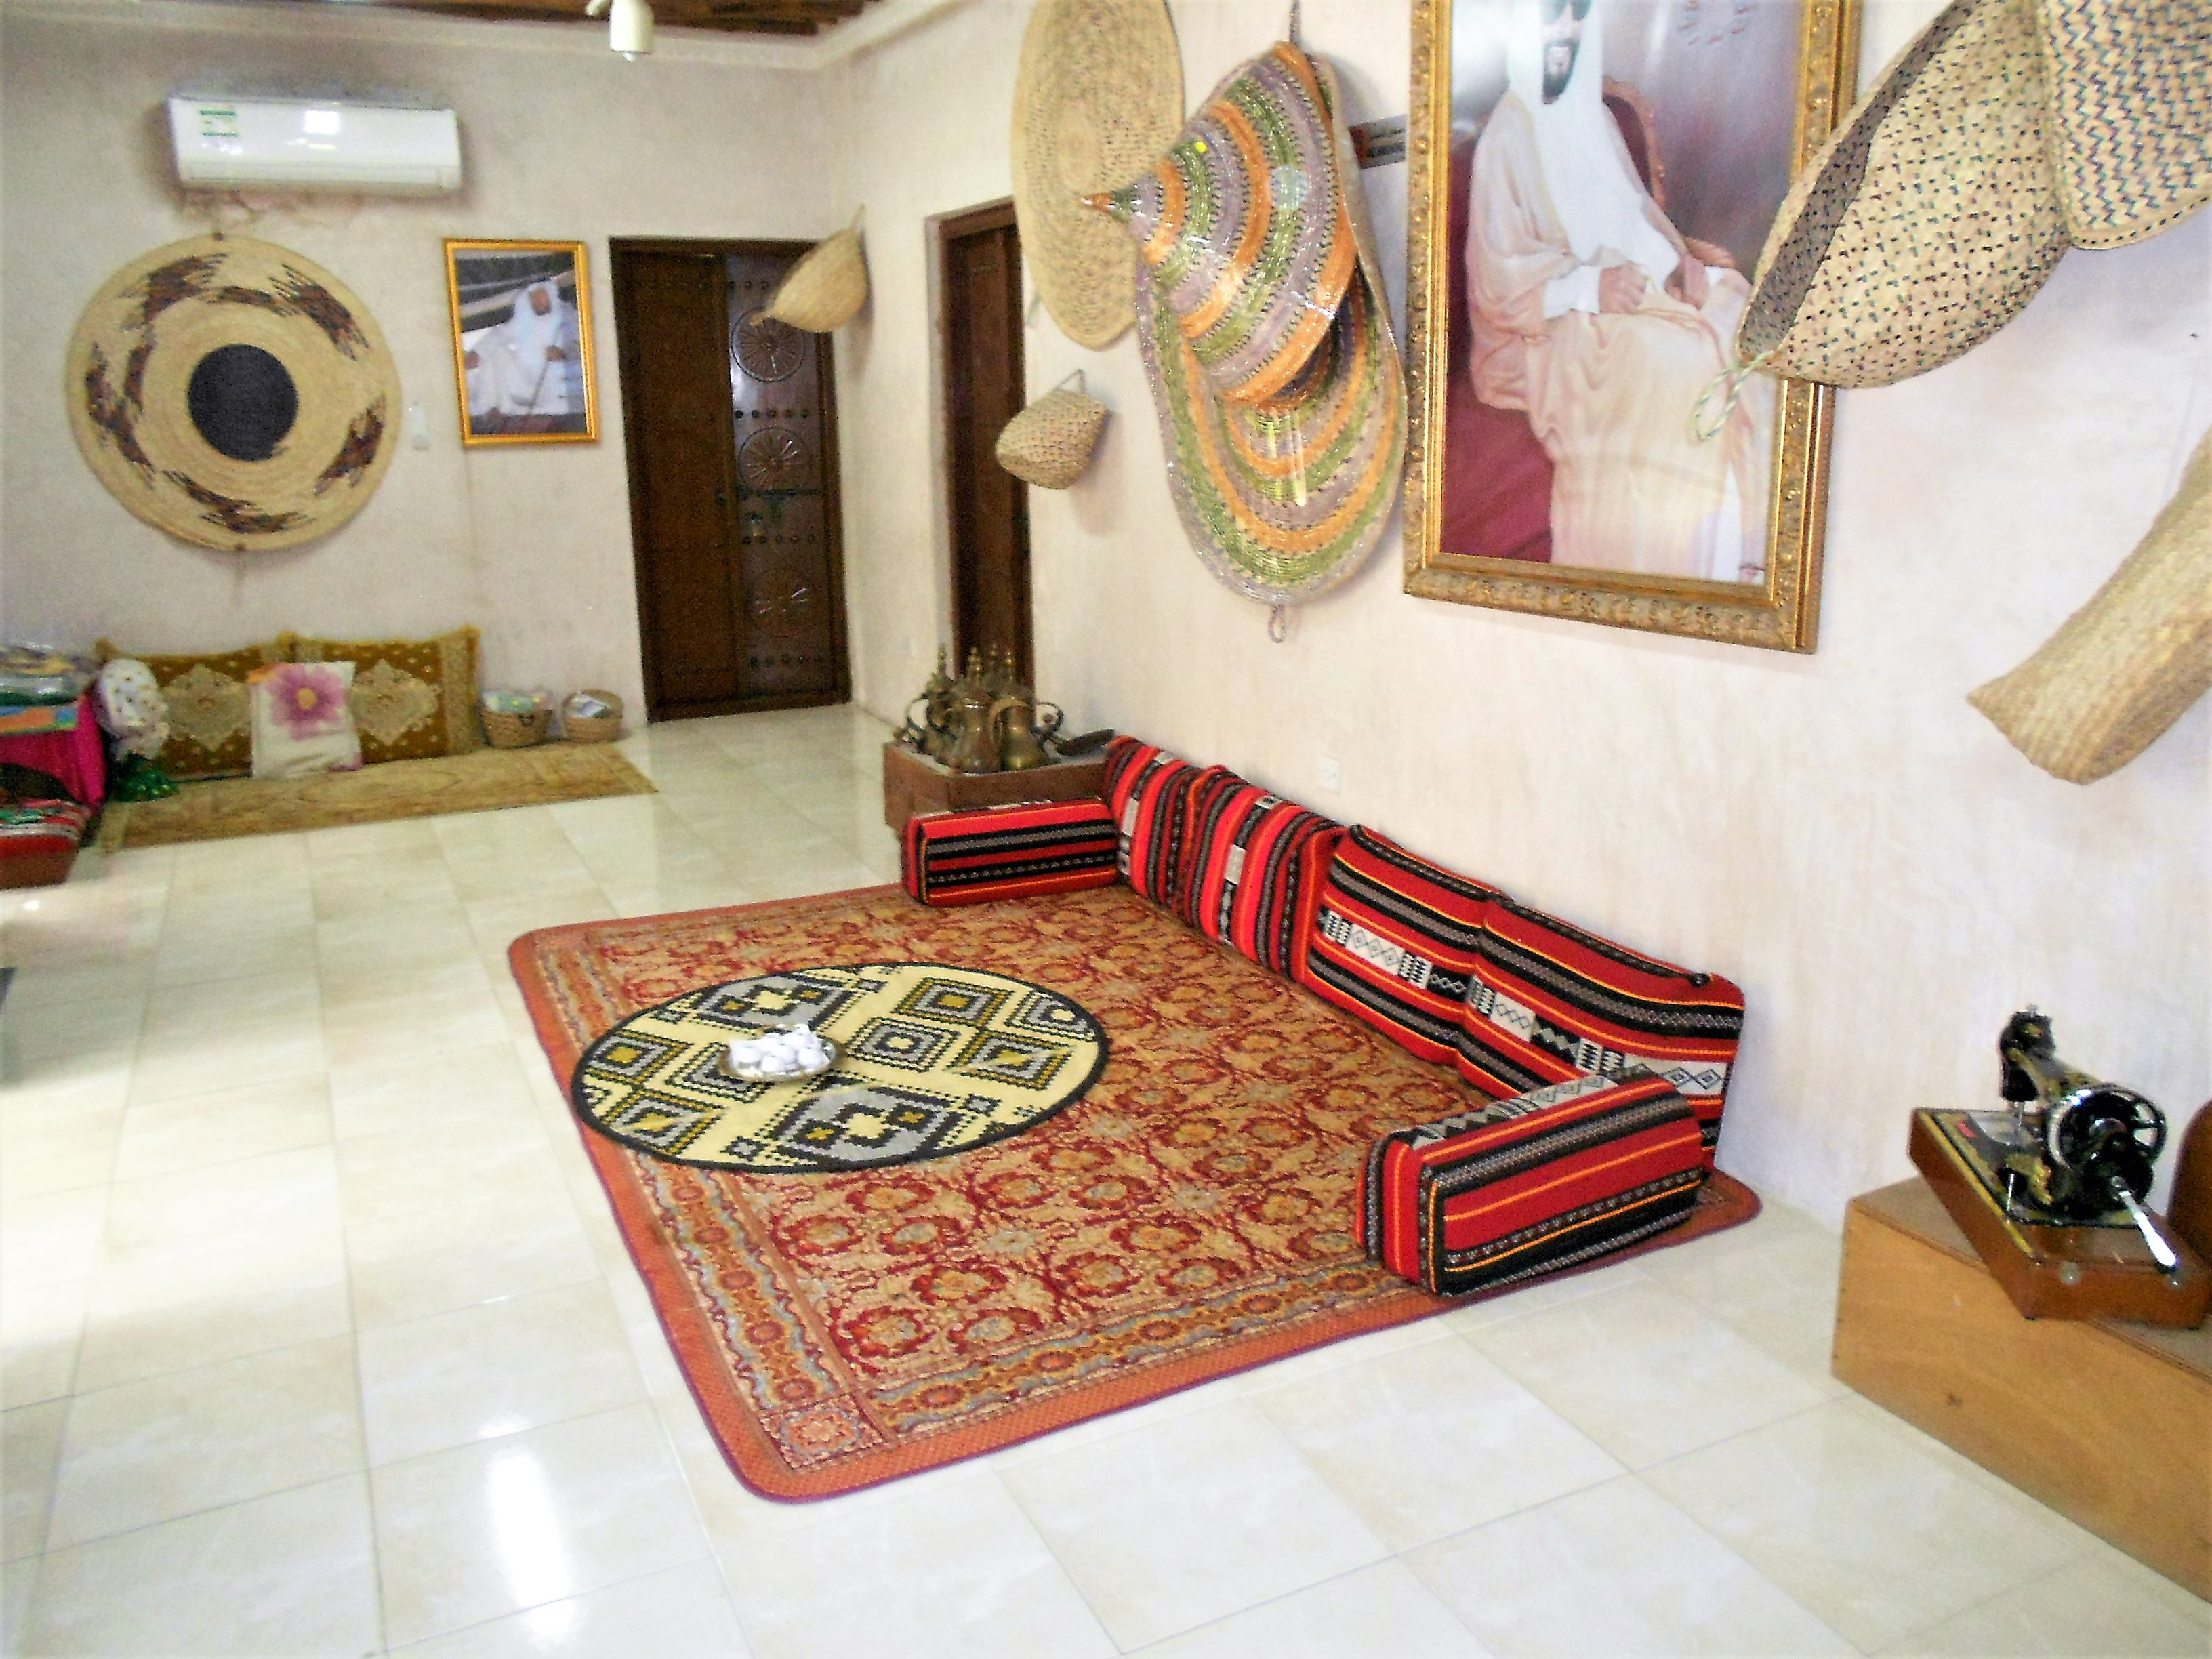 replica-of-the-interior-of-the-traditional-emirates-house-heritage-village